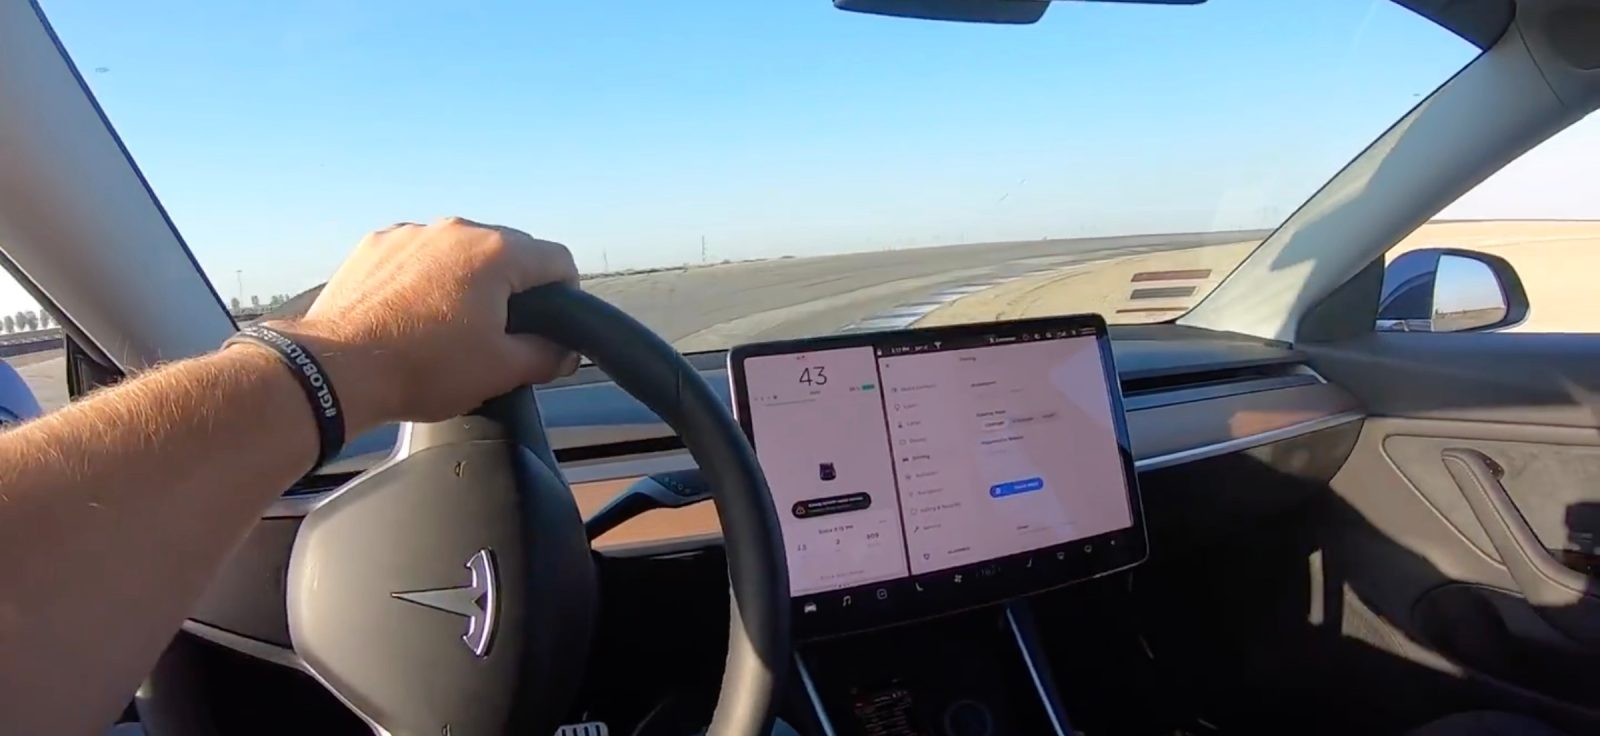 Tesla Model 3 Performance Sets Fastest Time At Global Event On Track Mode Gets Disqualified For Being Electric